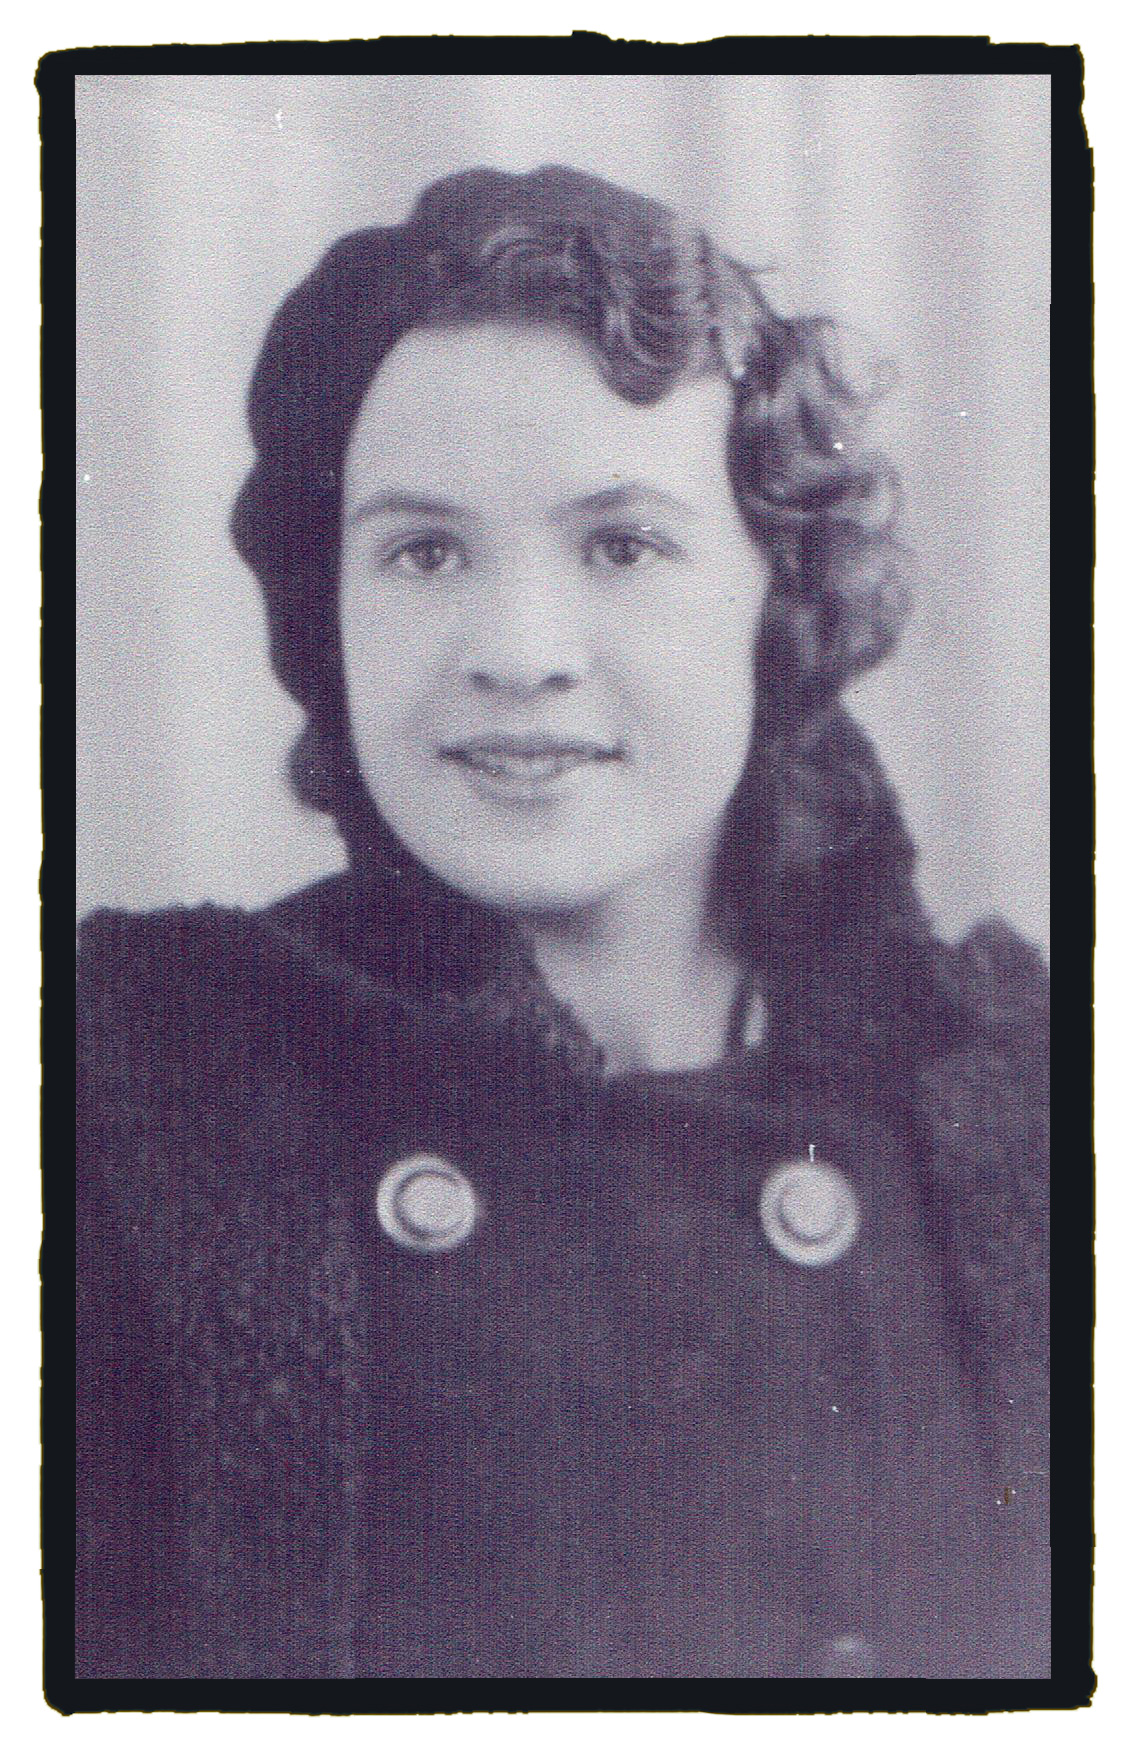 Black and white photograph of a young women taken c 1935.  She has wavy dark hair and dark brown eyes.